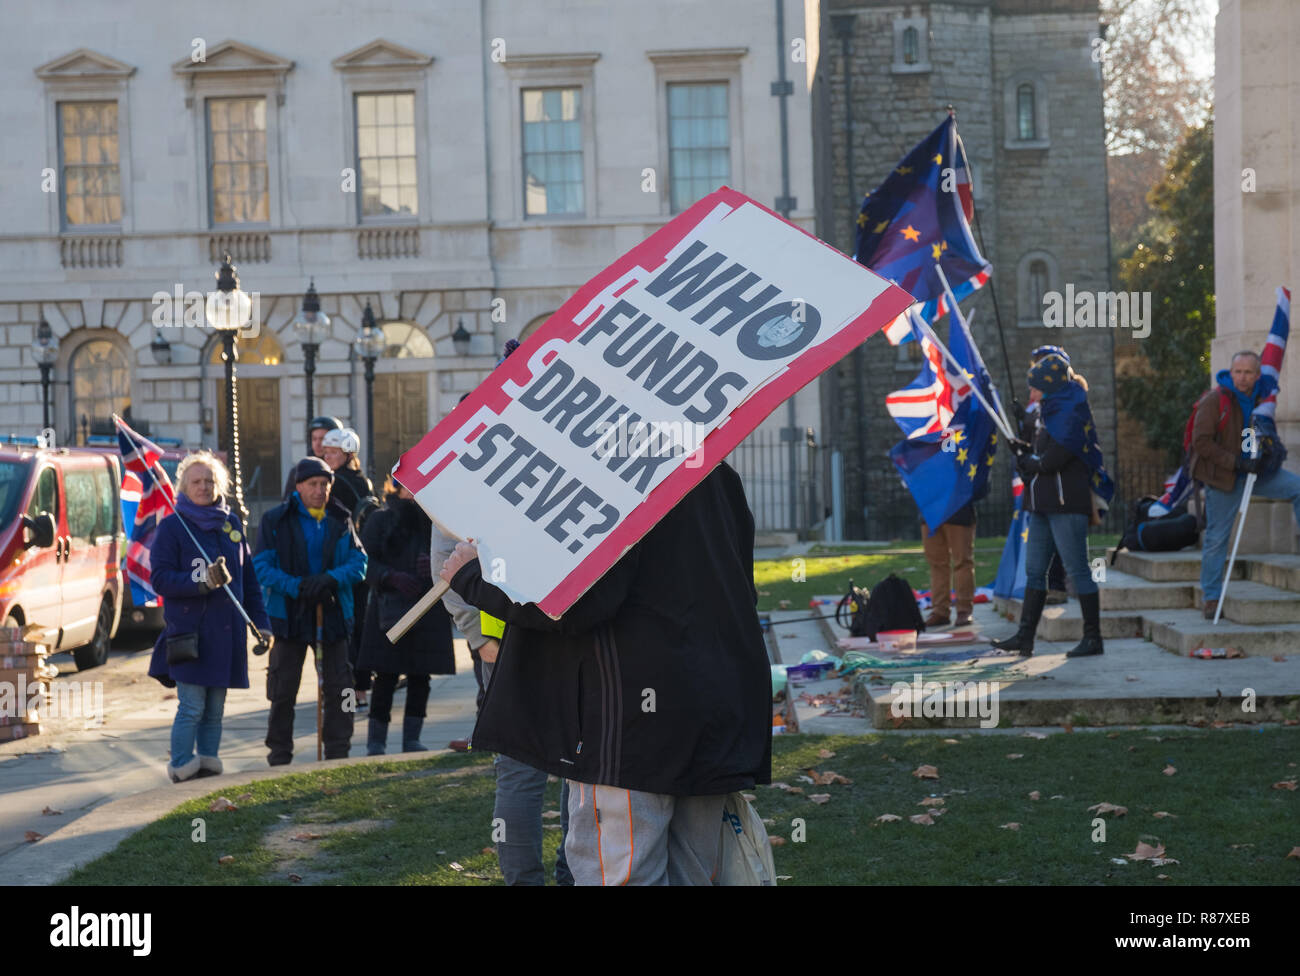 Pro-brexit campaigners with pro-remainers in front of George V statue opposite the Houses of Parliament, Abingdon Street, London - Stock Image